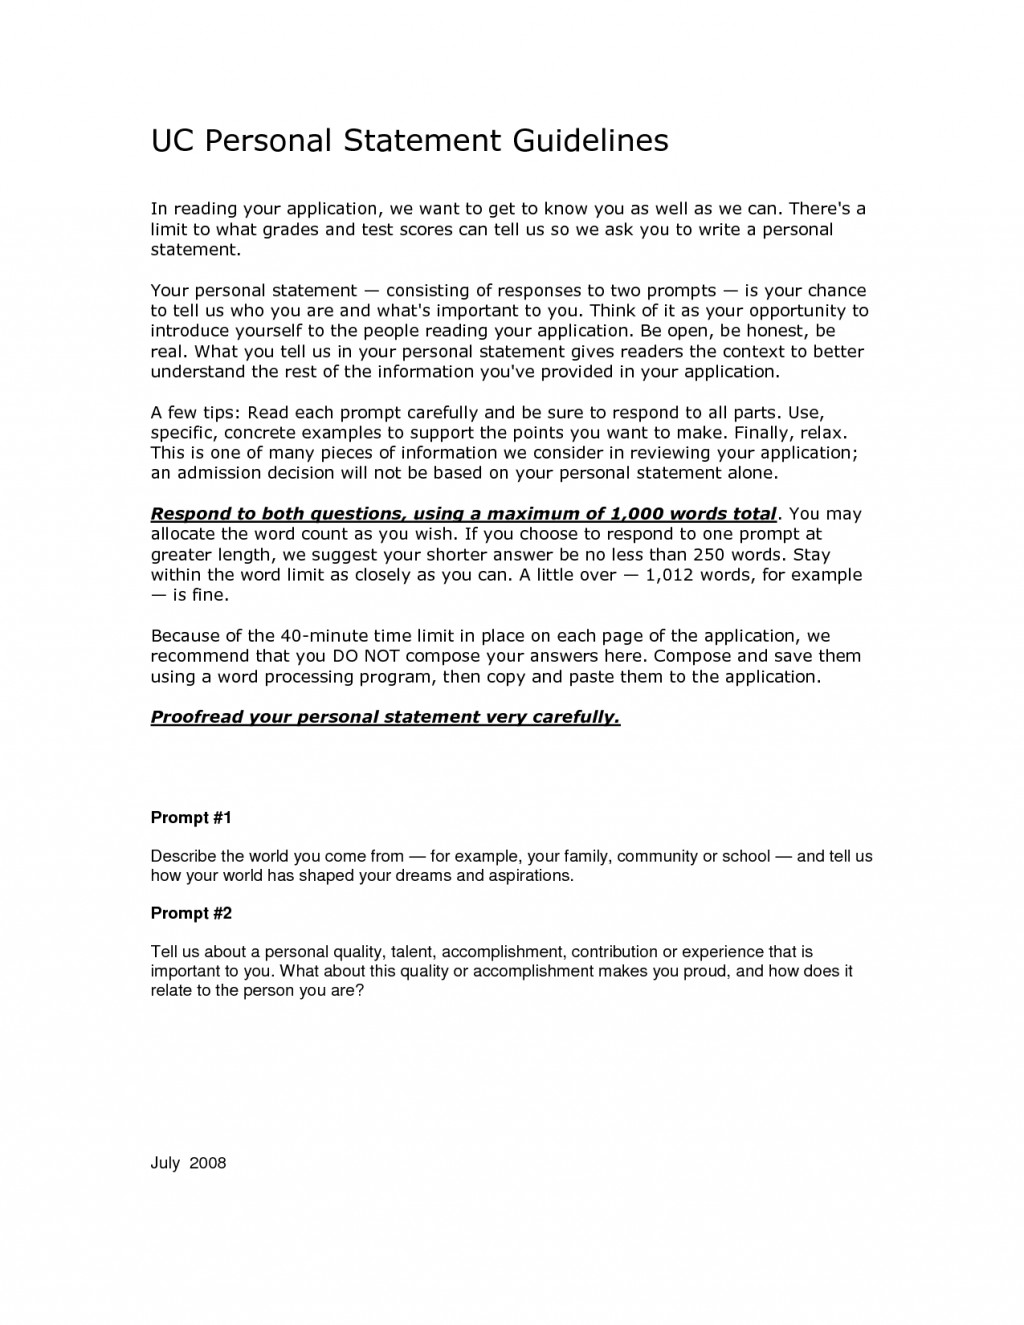 005 Uc Application Essays Personal Statement College Admission Prompts Of Statements Template Cm3 App Prompt Ucf Texas Admissions Top Essay Examples Transfer University California Example Samples Large